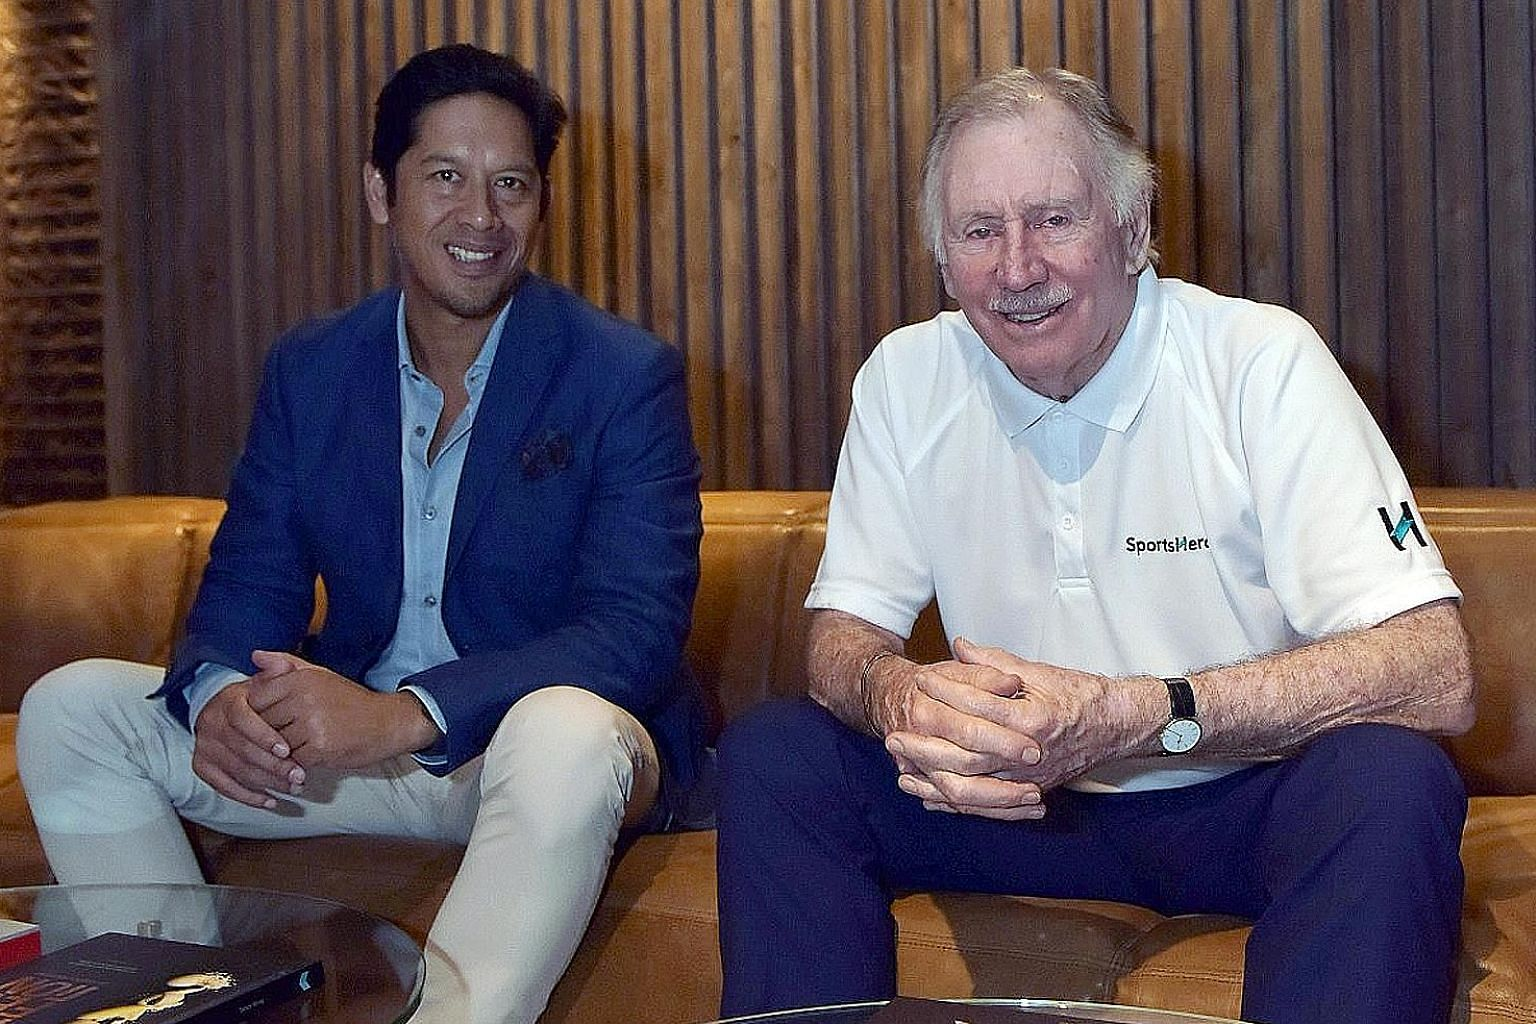 SportsHero CEO Tom Lapping (left), with the company's cricket ambassador and retired Australian legend, Ian Chappell. SportsHero expanded to India in April by adding cricket to its line-up of sports. The prediction app had previously offered only foo